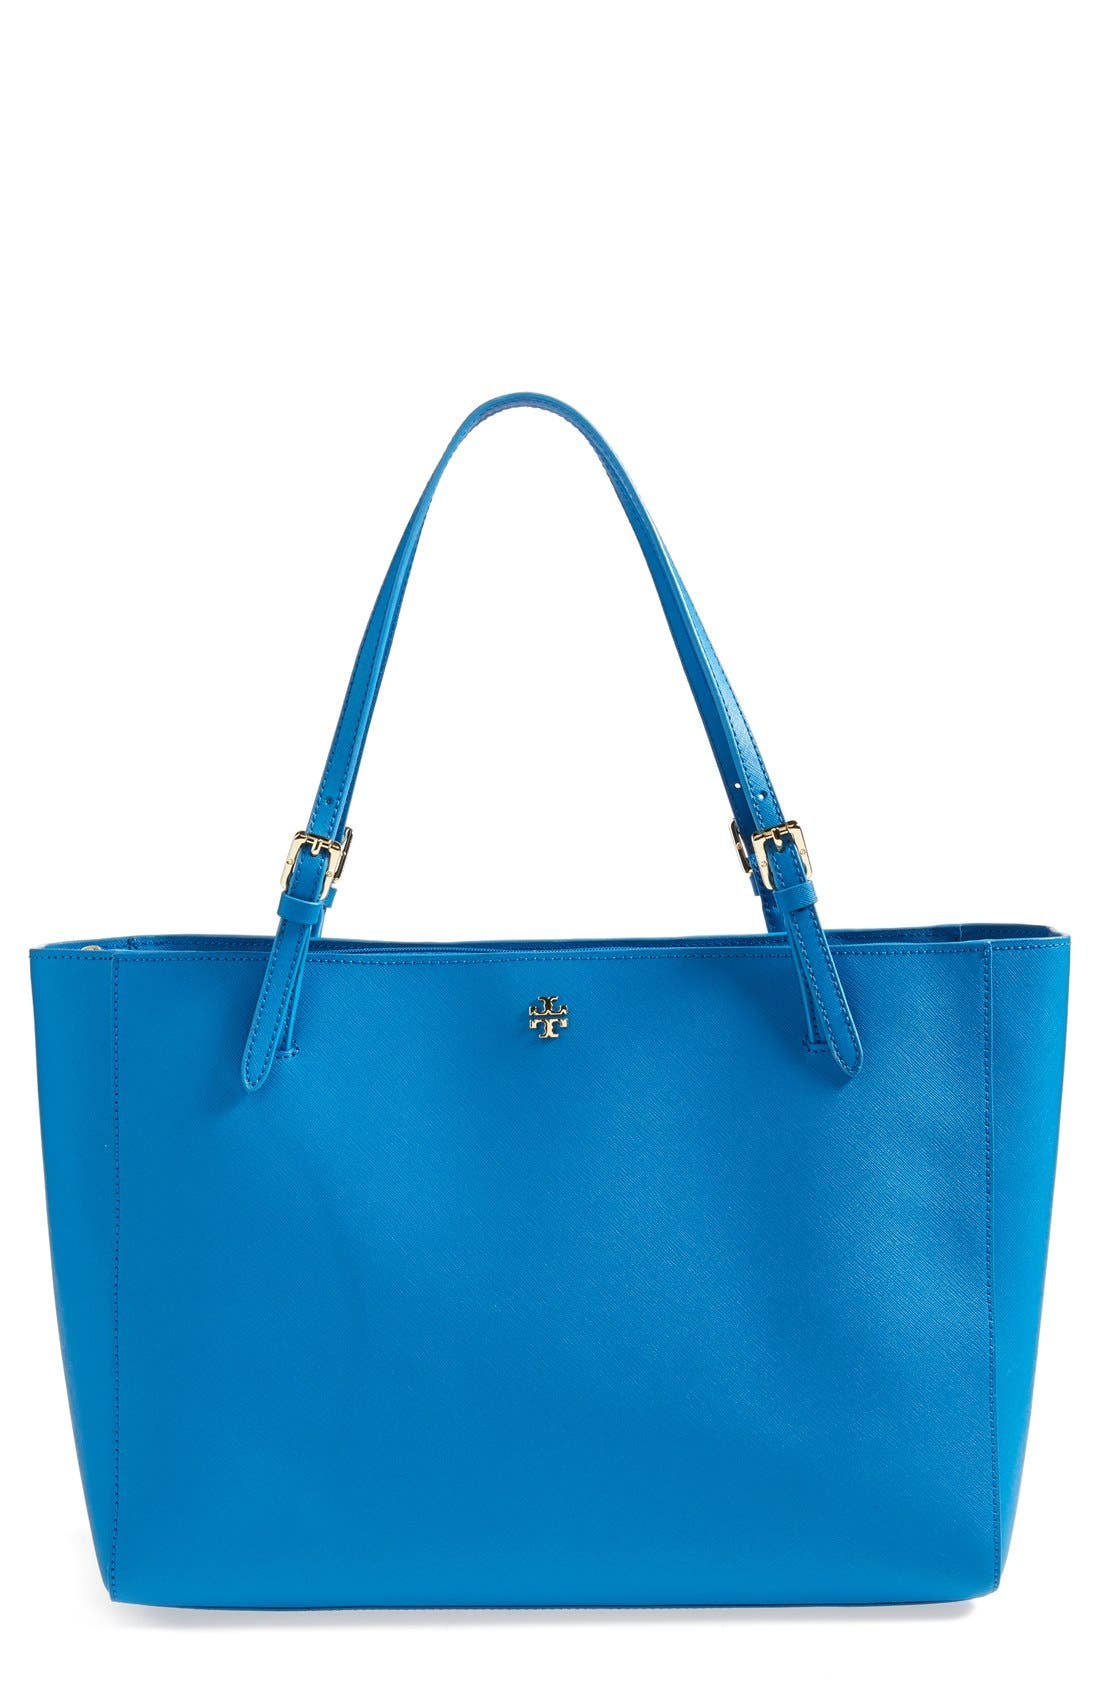 'York' Buckle Tote,                             Main thumbnail 8, color,